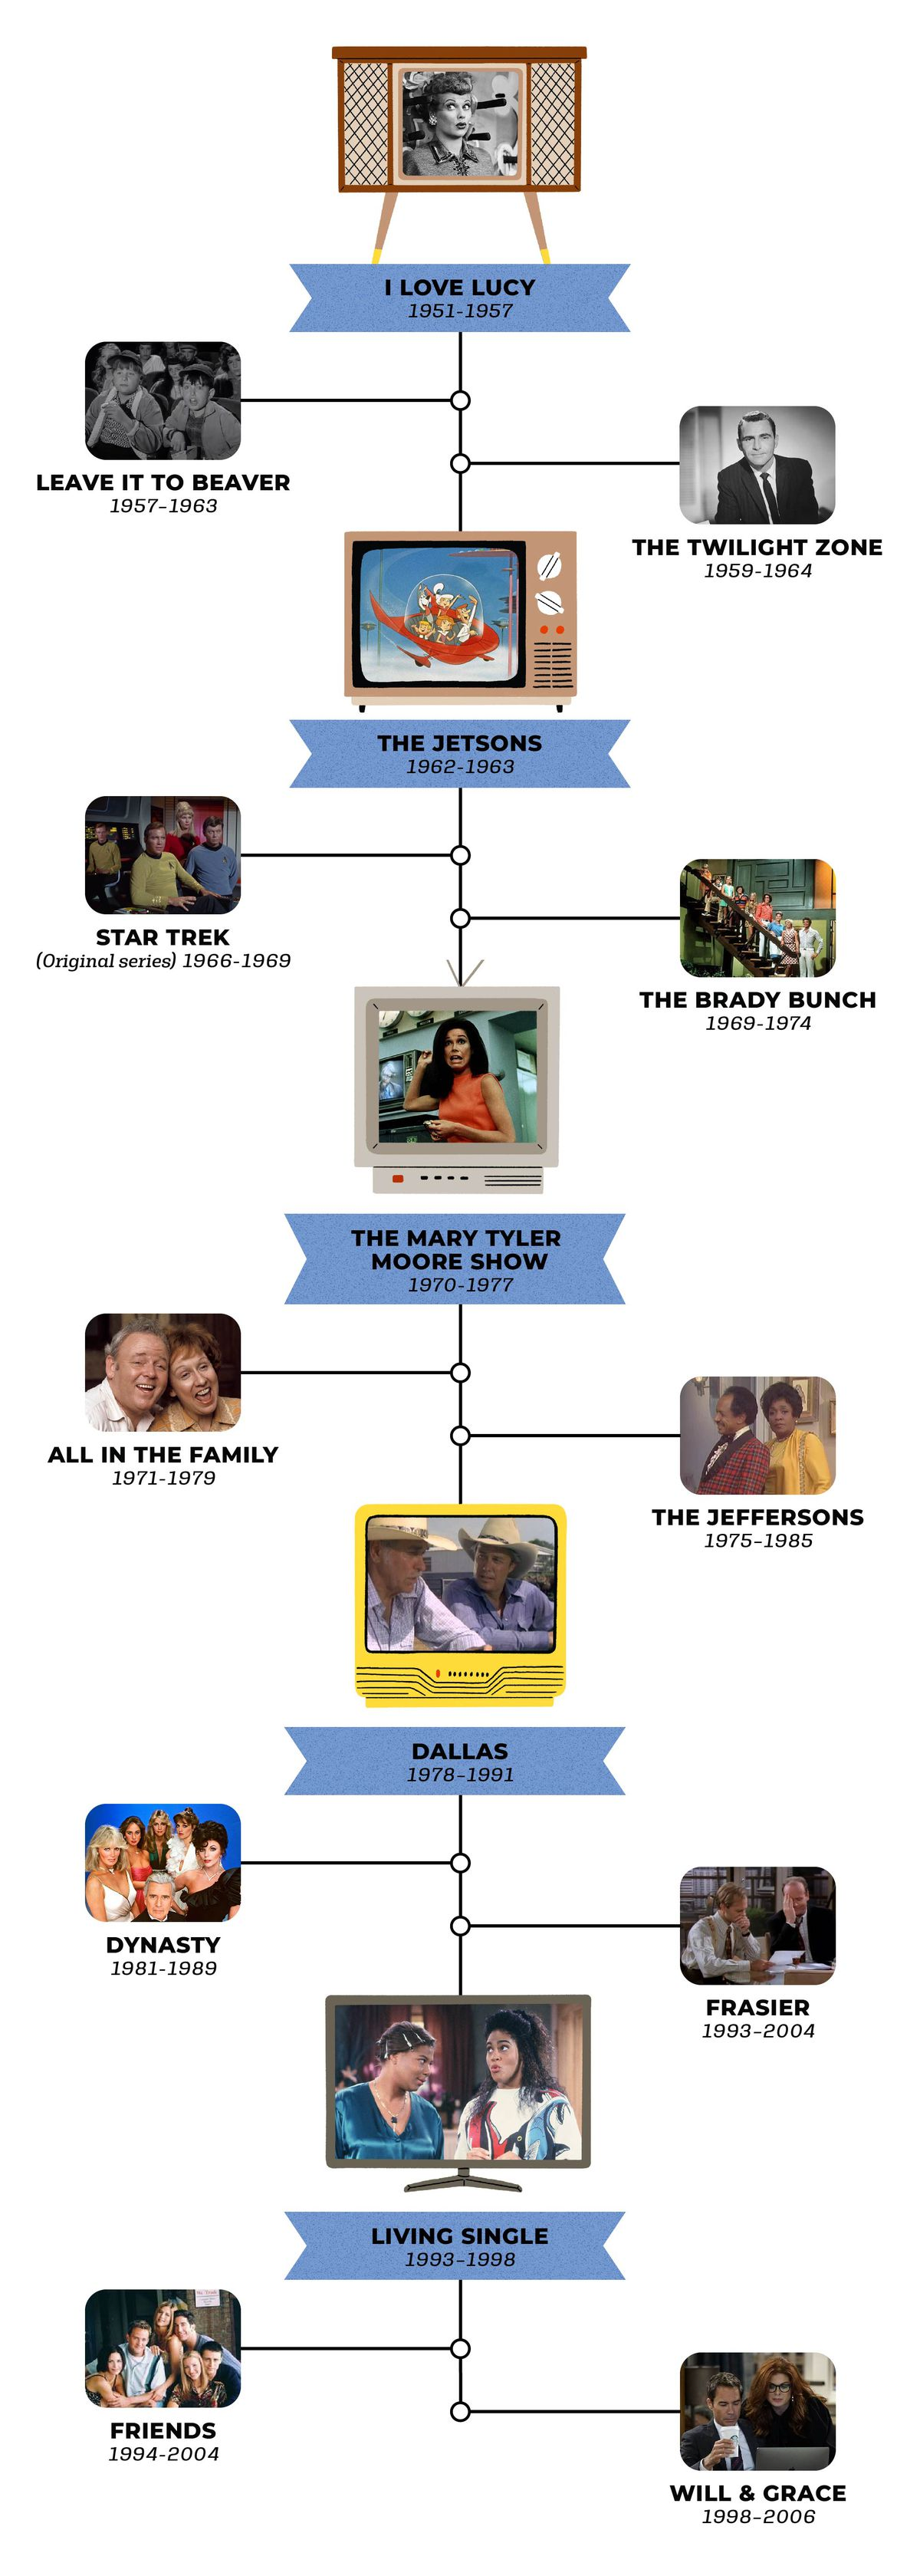 A chronological timeline of television shows that inspired home design from the 1950s through the 1990s.